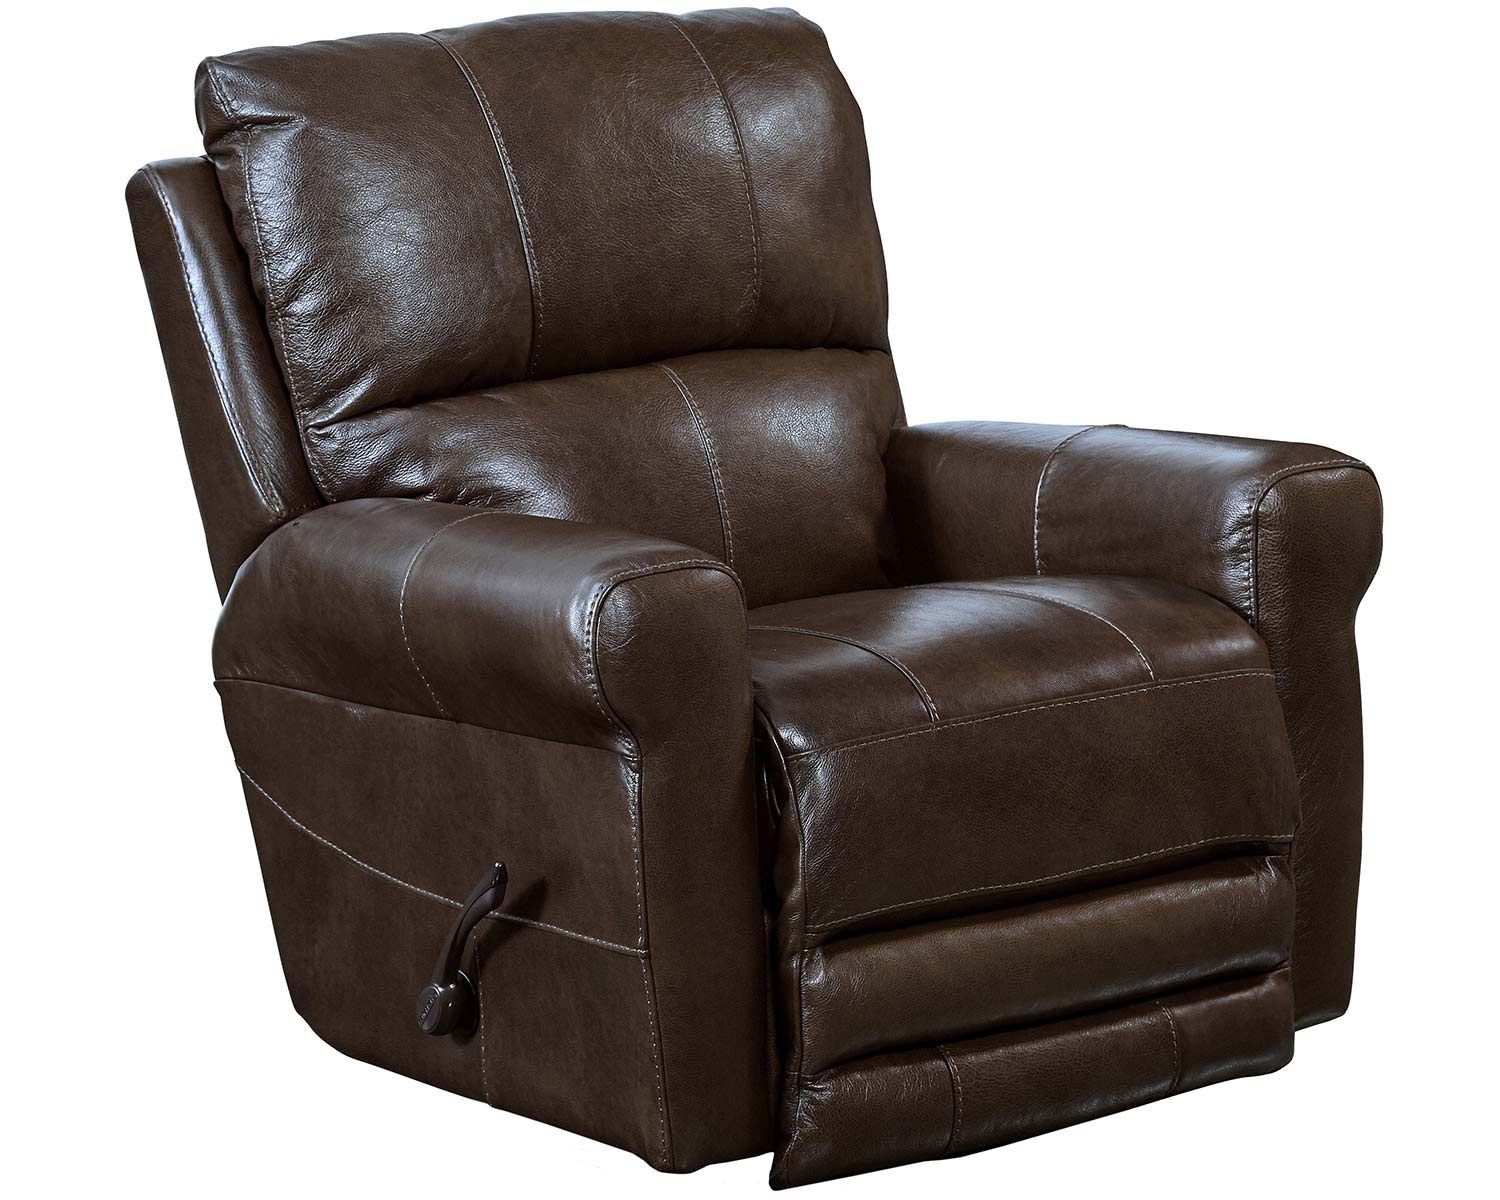 CatNapper Hoffner Leather Recliner Chair - Chocolate